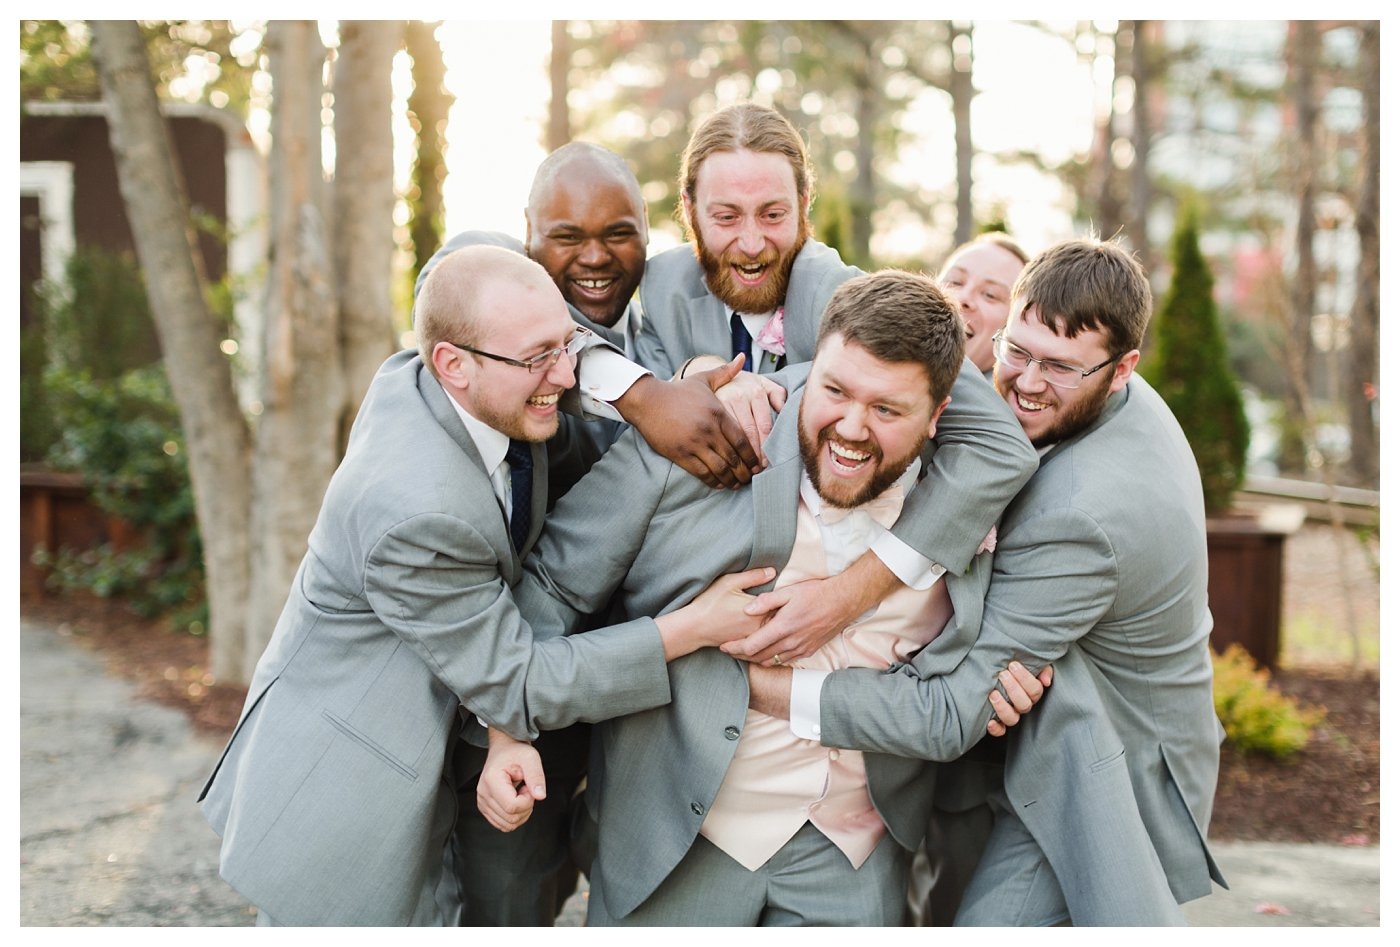 Melrose Knitting Mill Wedding in Raleigh NC by Amanda and Grady Photography